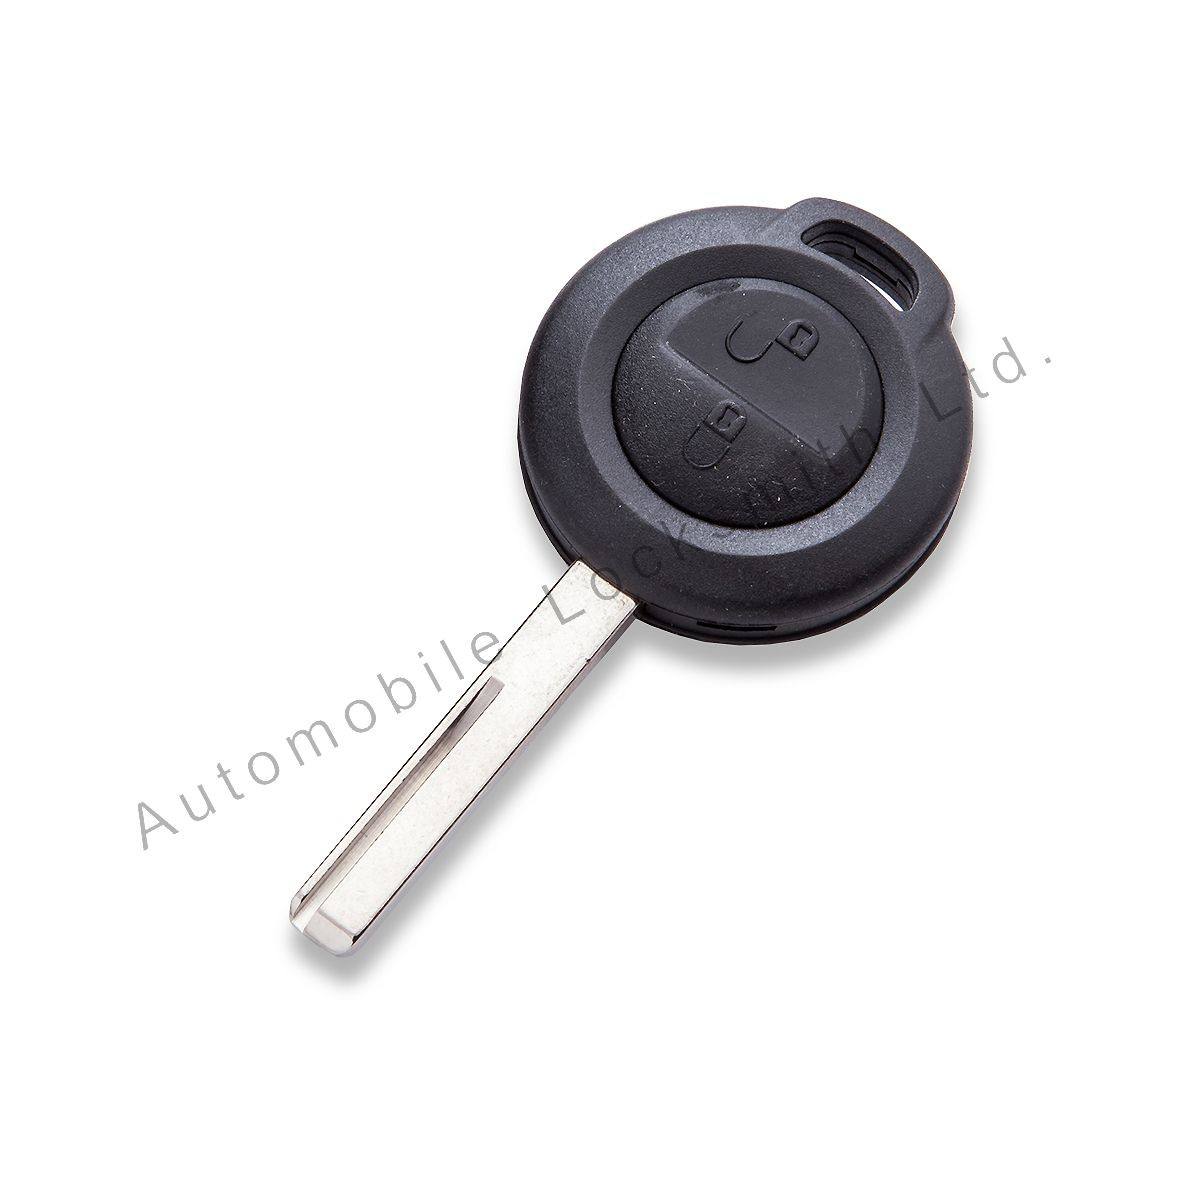 for Mitsubishi 2 button remote key case shell with rubber pad and blade